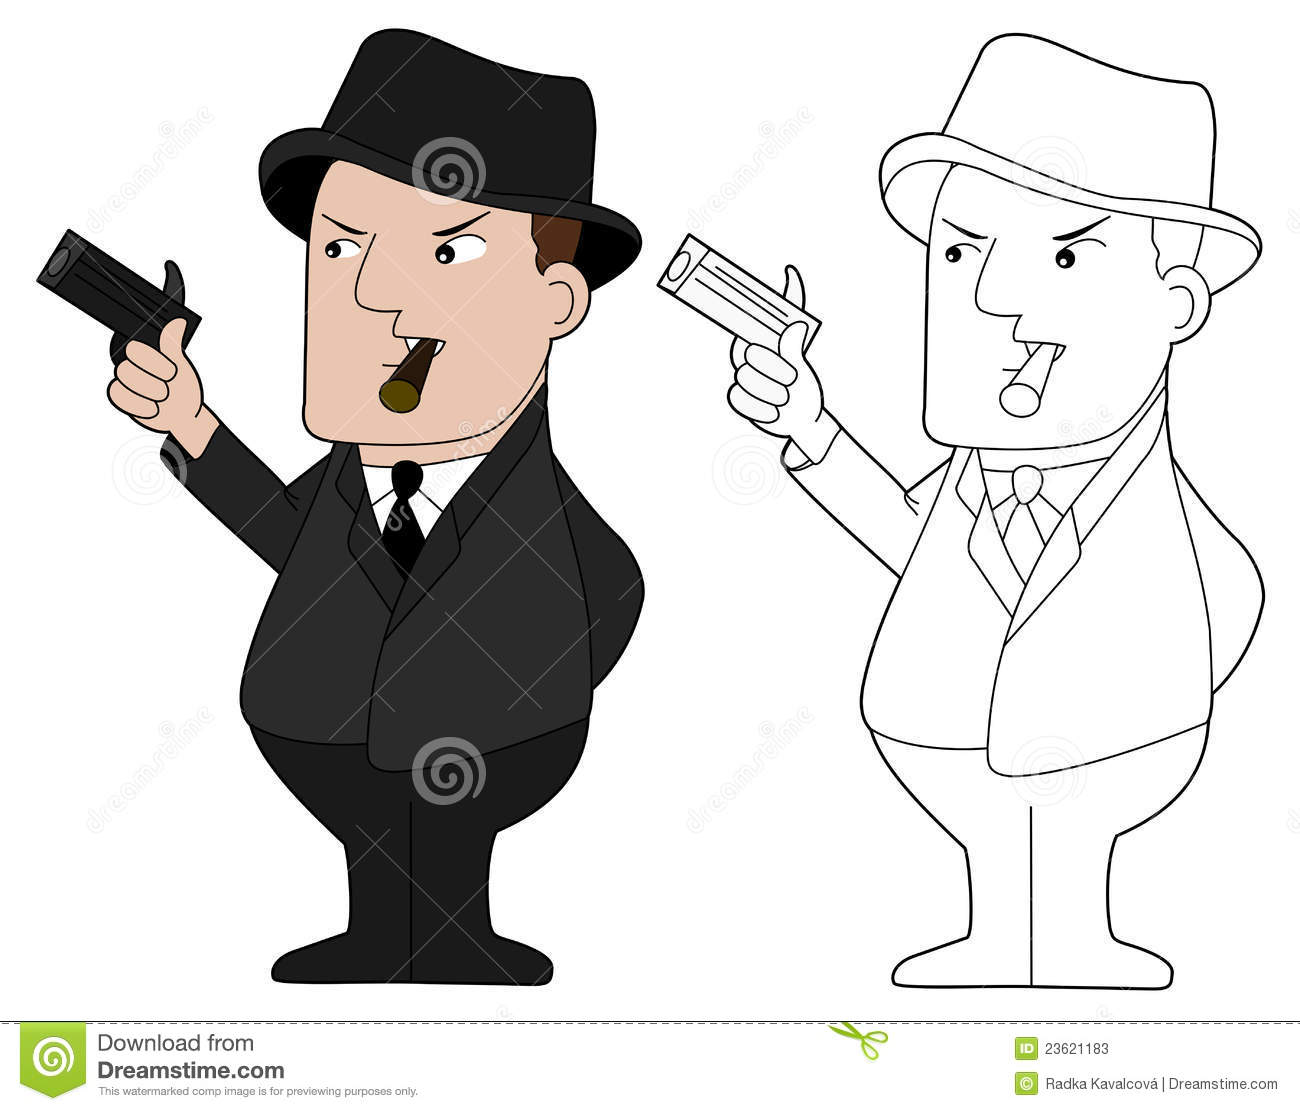 Mafia guy cartoon stock illustration. Image of caucasian ...